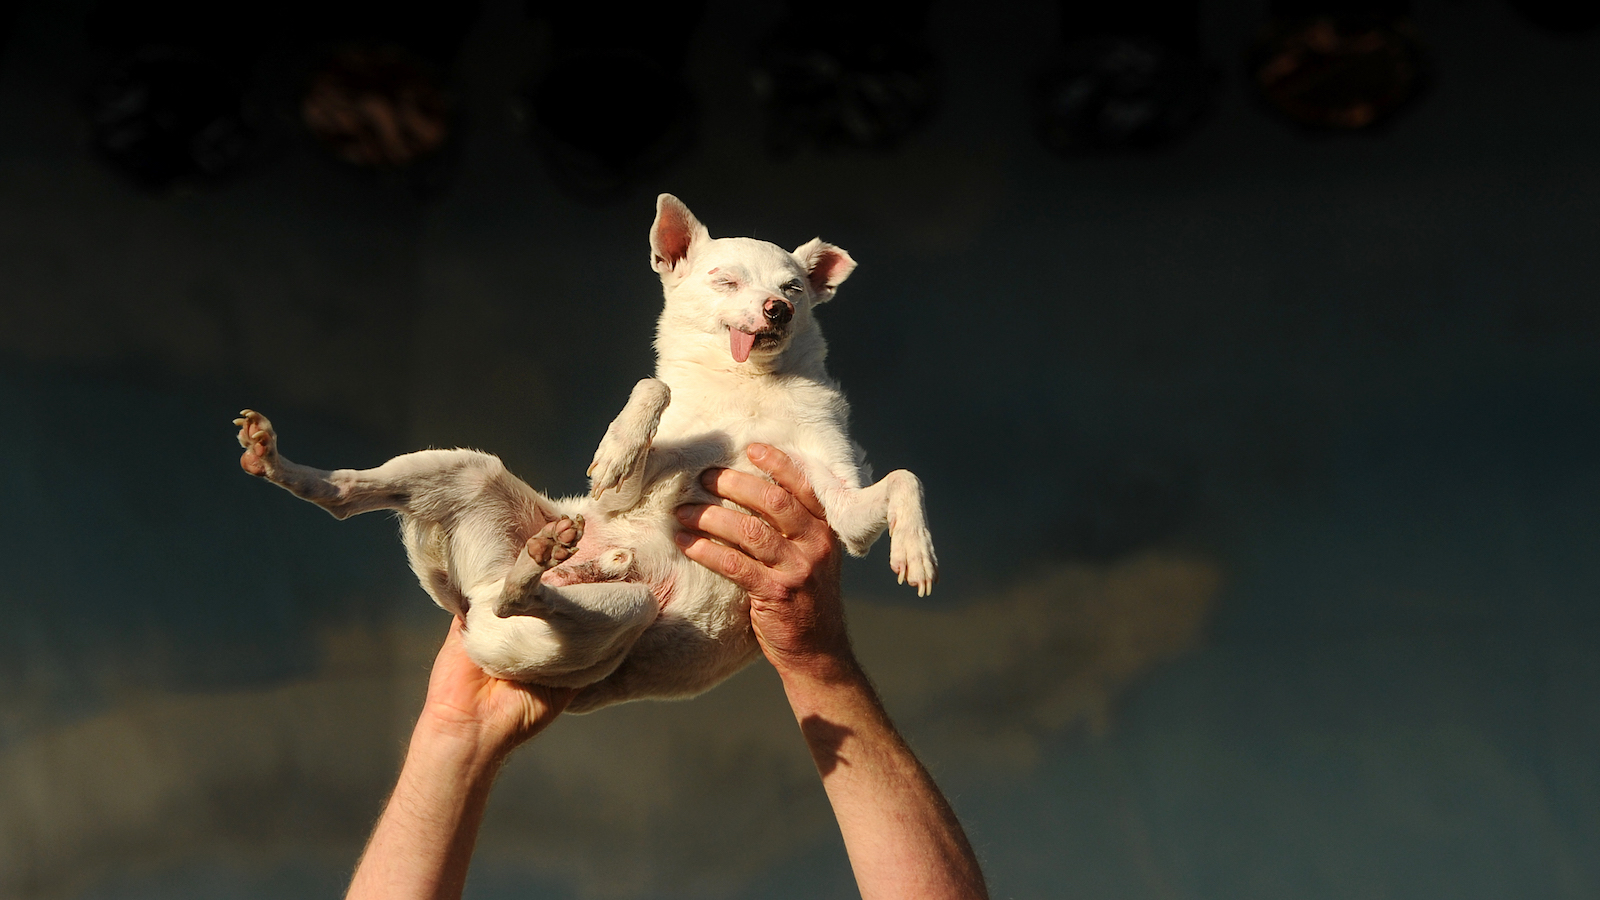 dog being held in the air